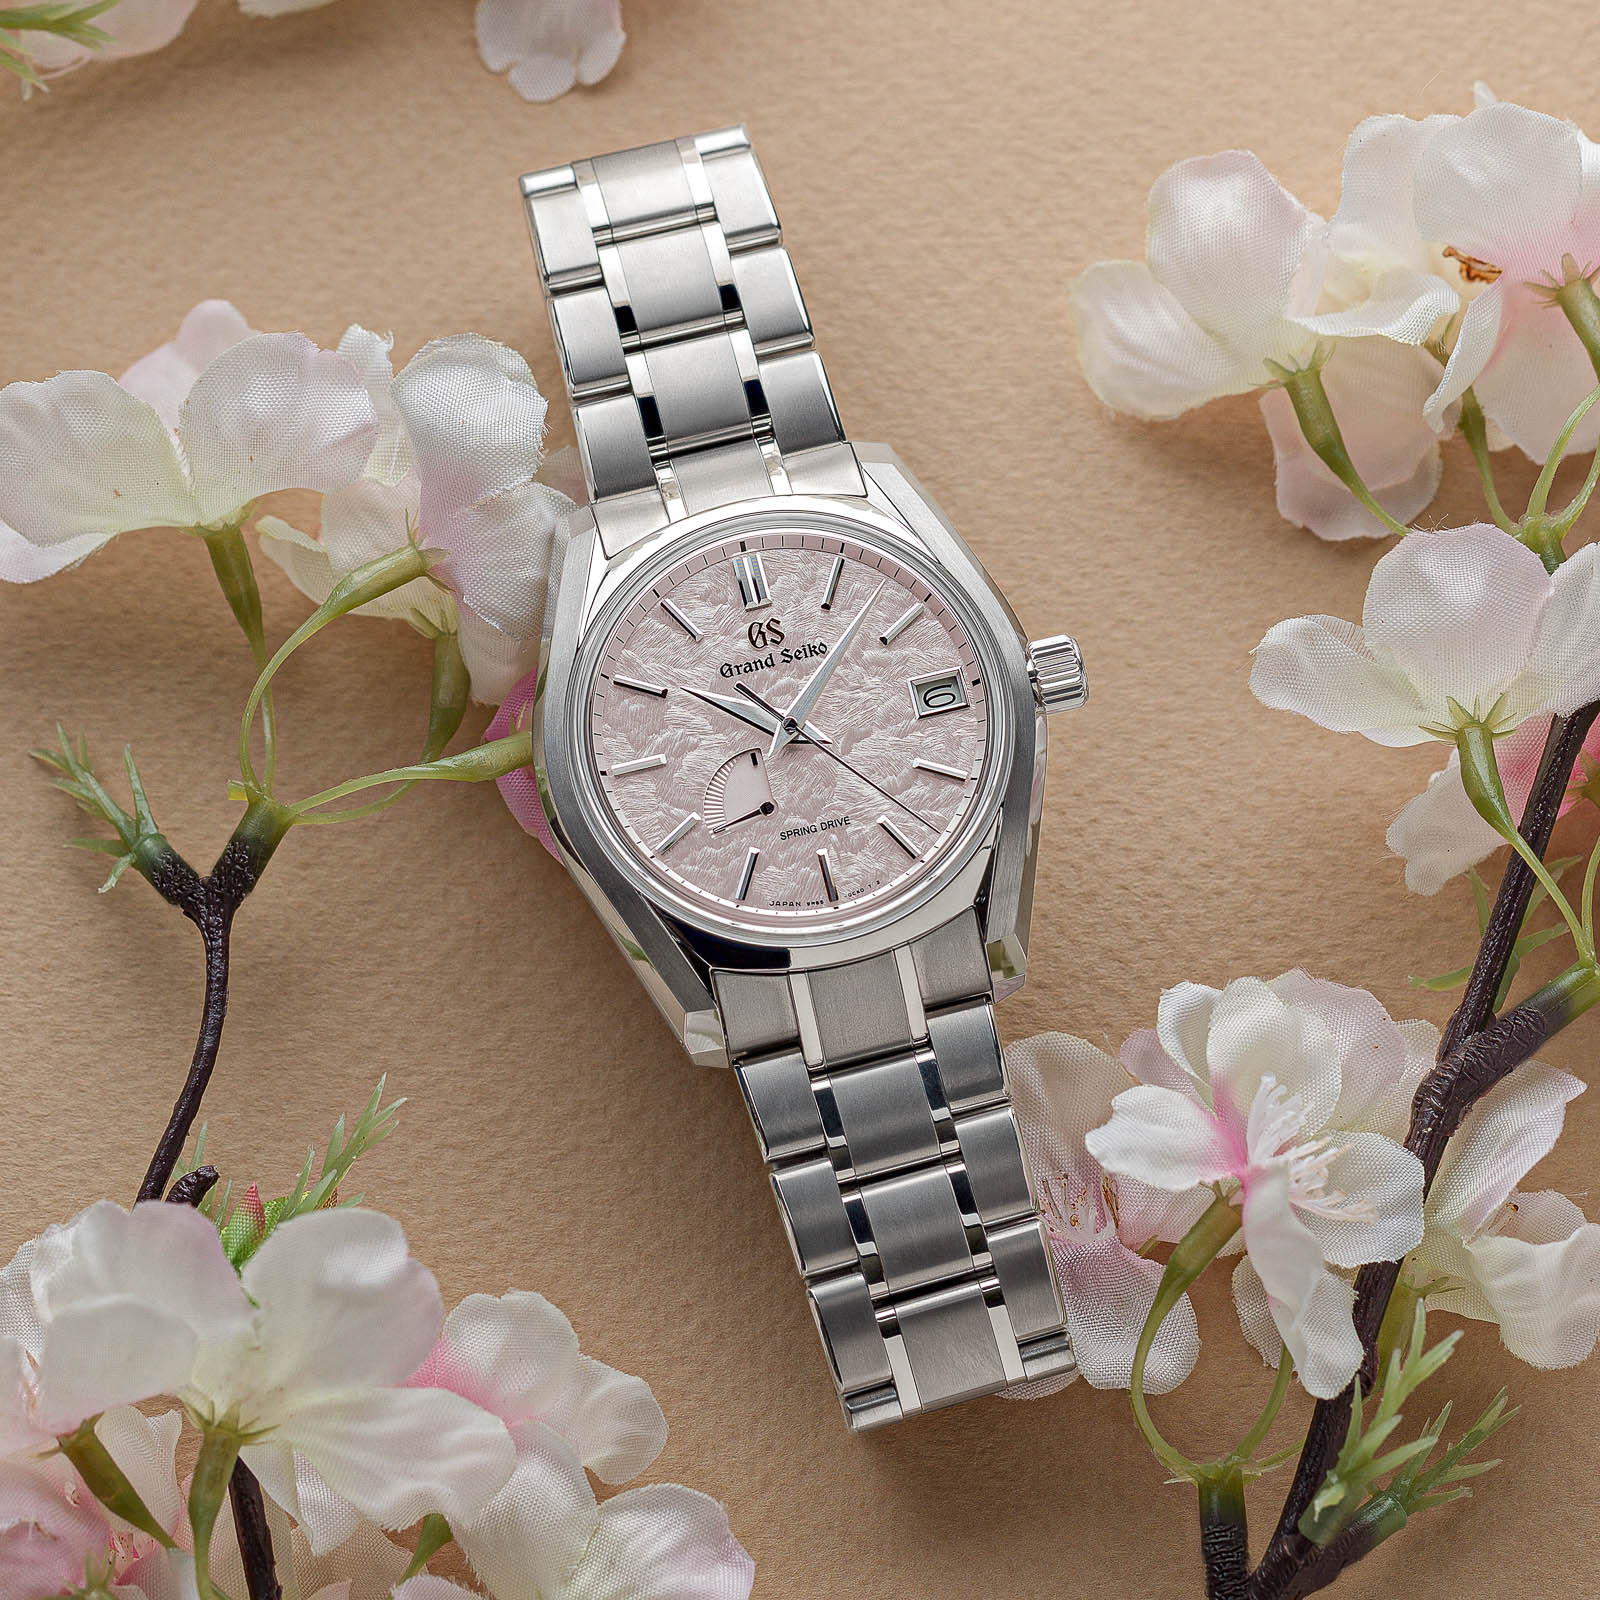 A pink dial Grand Seiko wristwatch in a titanium case with matching bracelet.